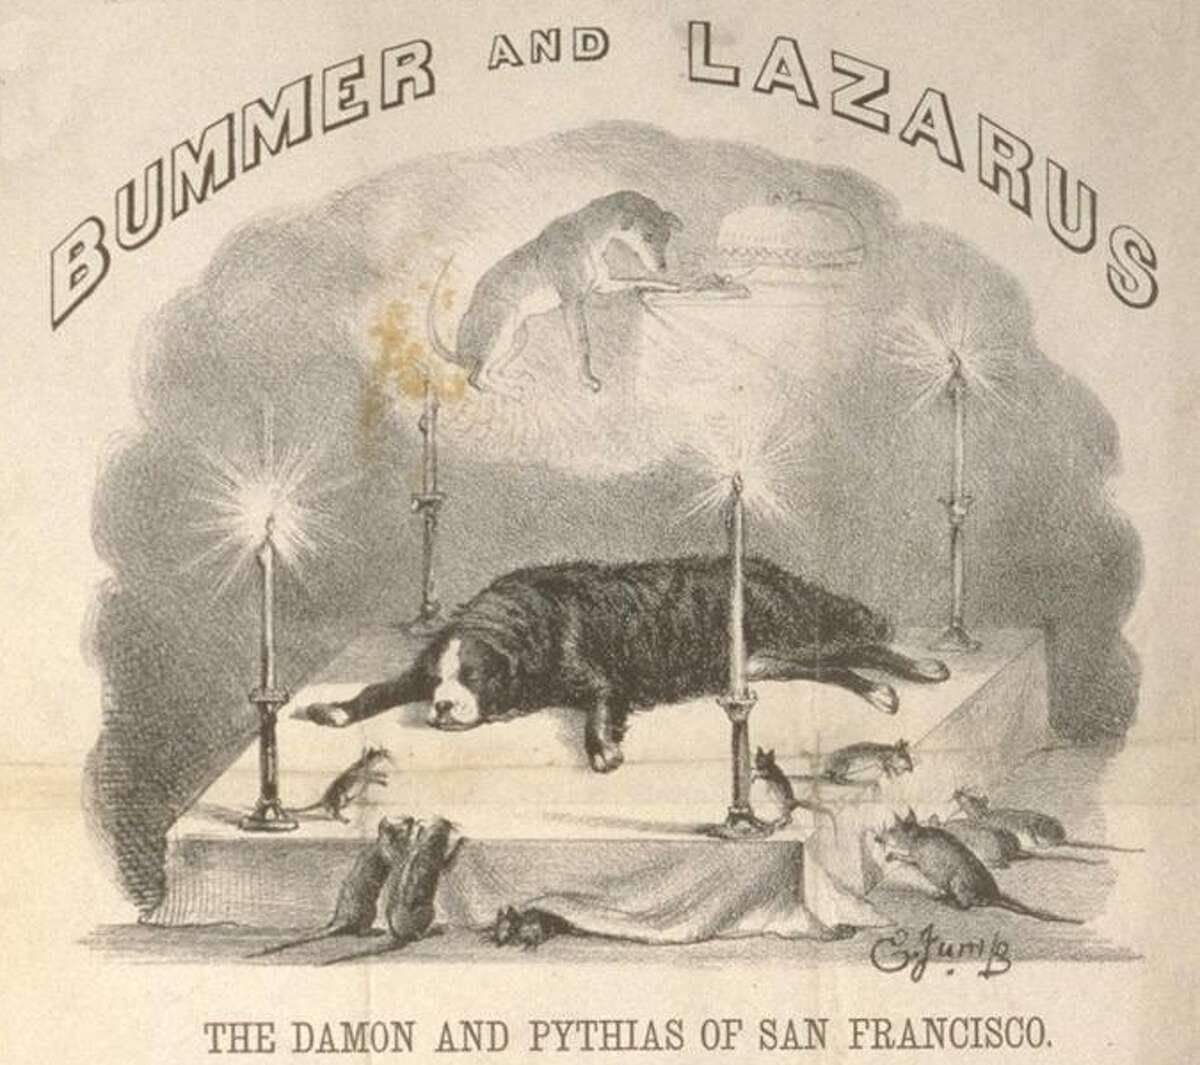 Edward Jump's lithograph of Bummer lying in state.